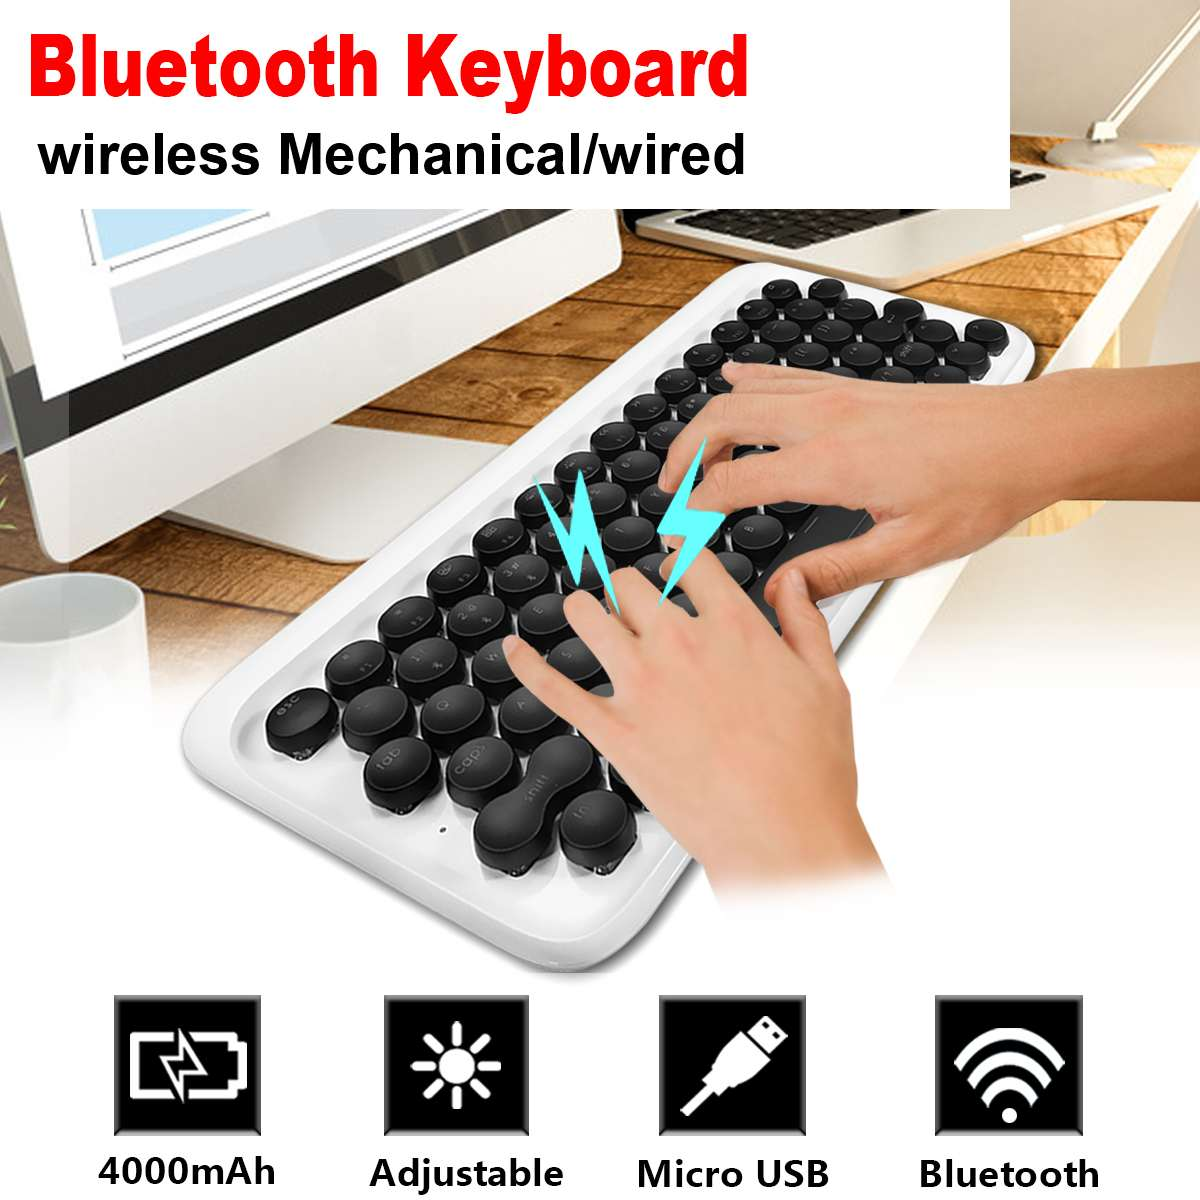 Wireless 78 Key Bluetooth Mechanical Backlit Keyboard Typewriter Mechanical Keyboard Wireless Keyboard montreux jazz festival 2018 juliette armanet